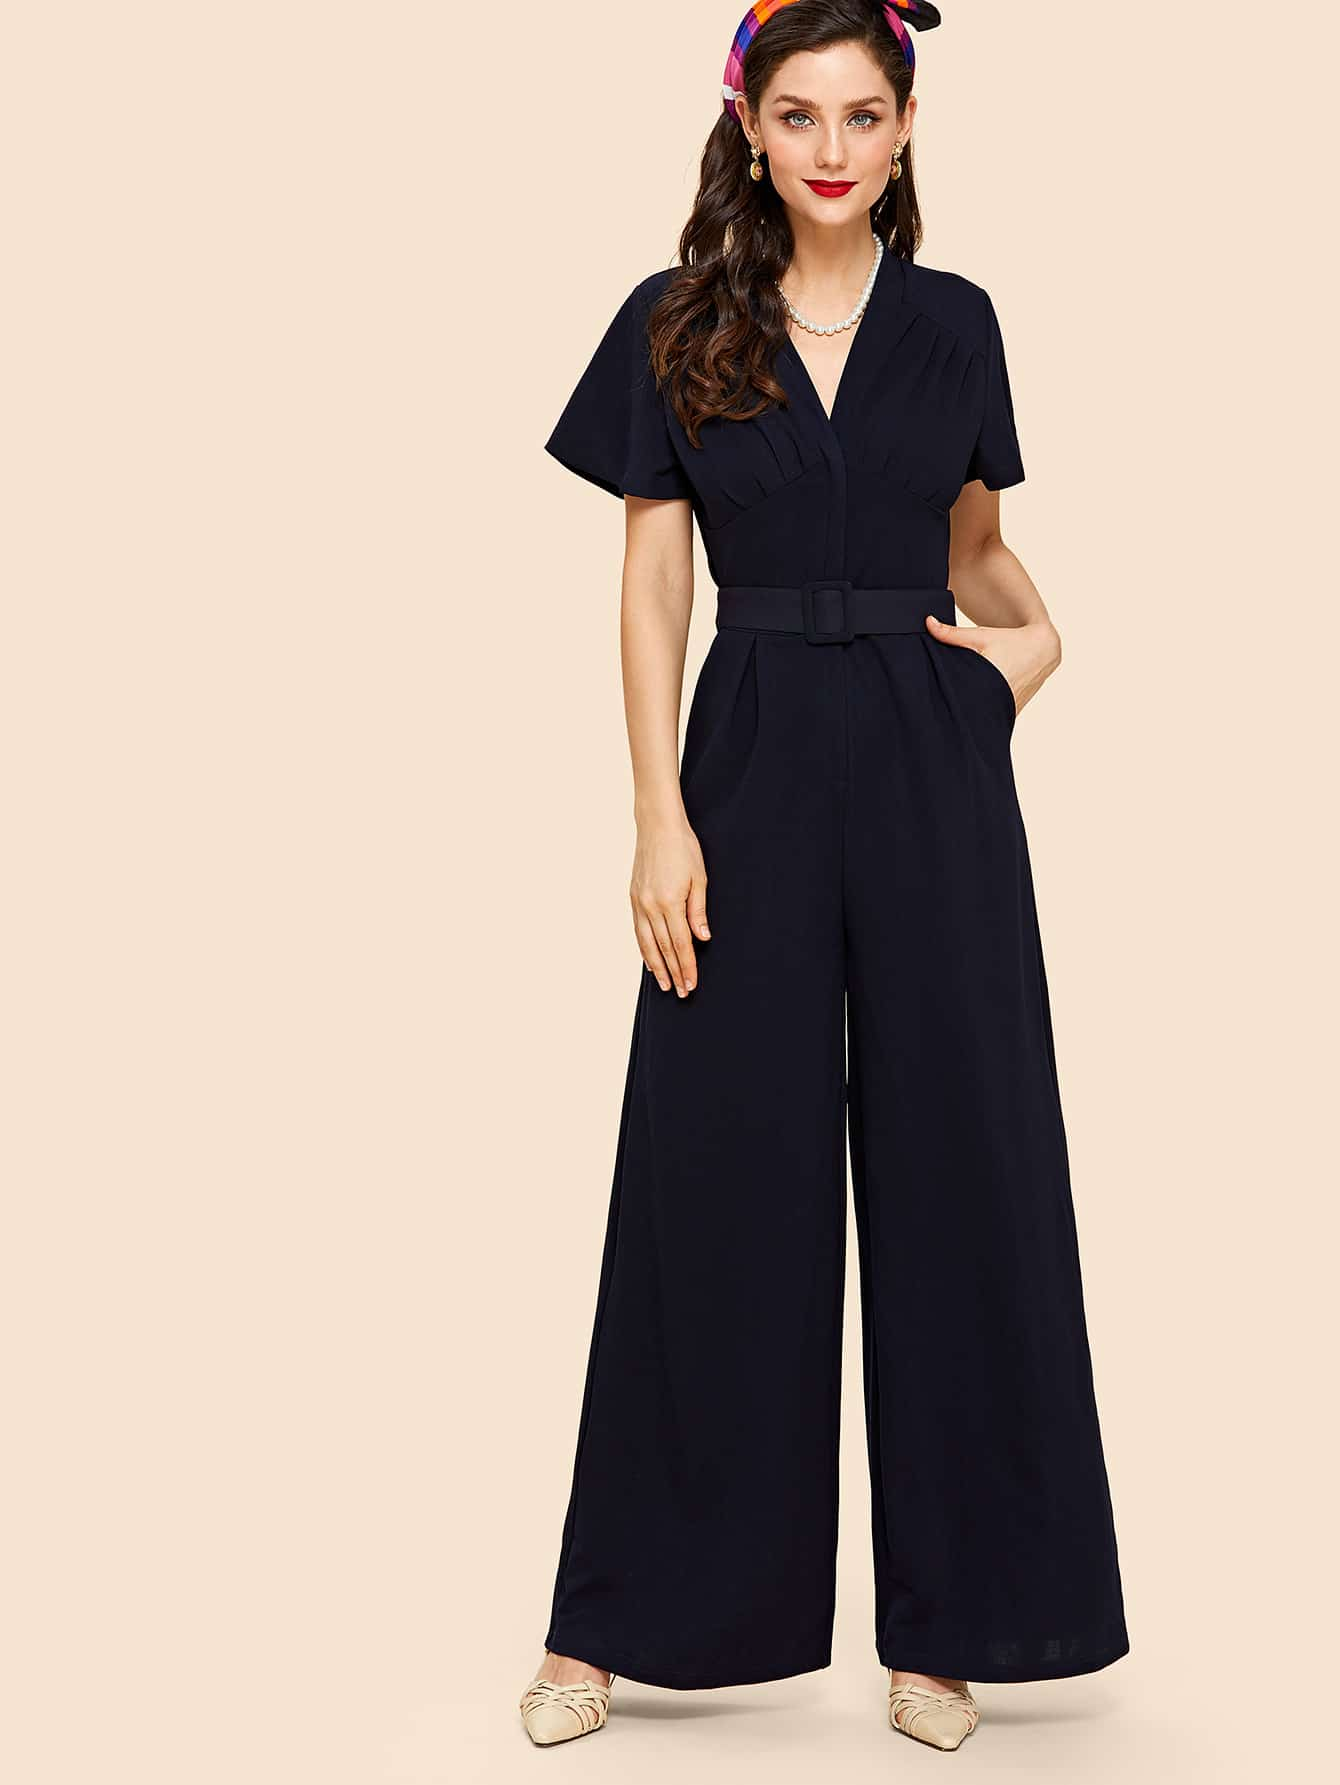 Fold Pleat Detail Palazzo Jumpsuit with Buckle Belt box pleat detail palazzo pants